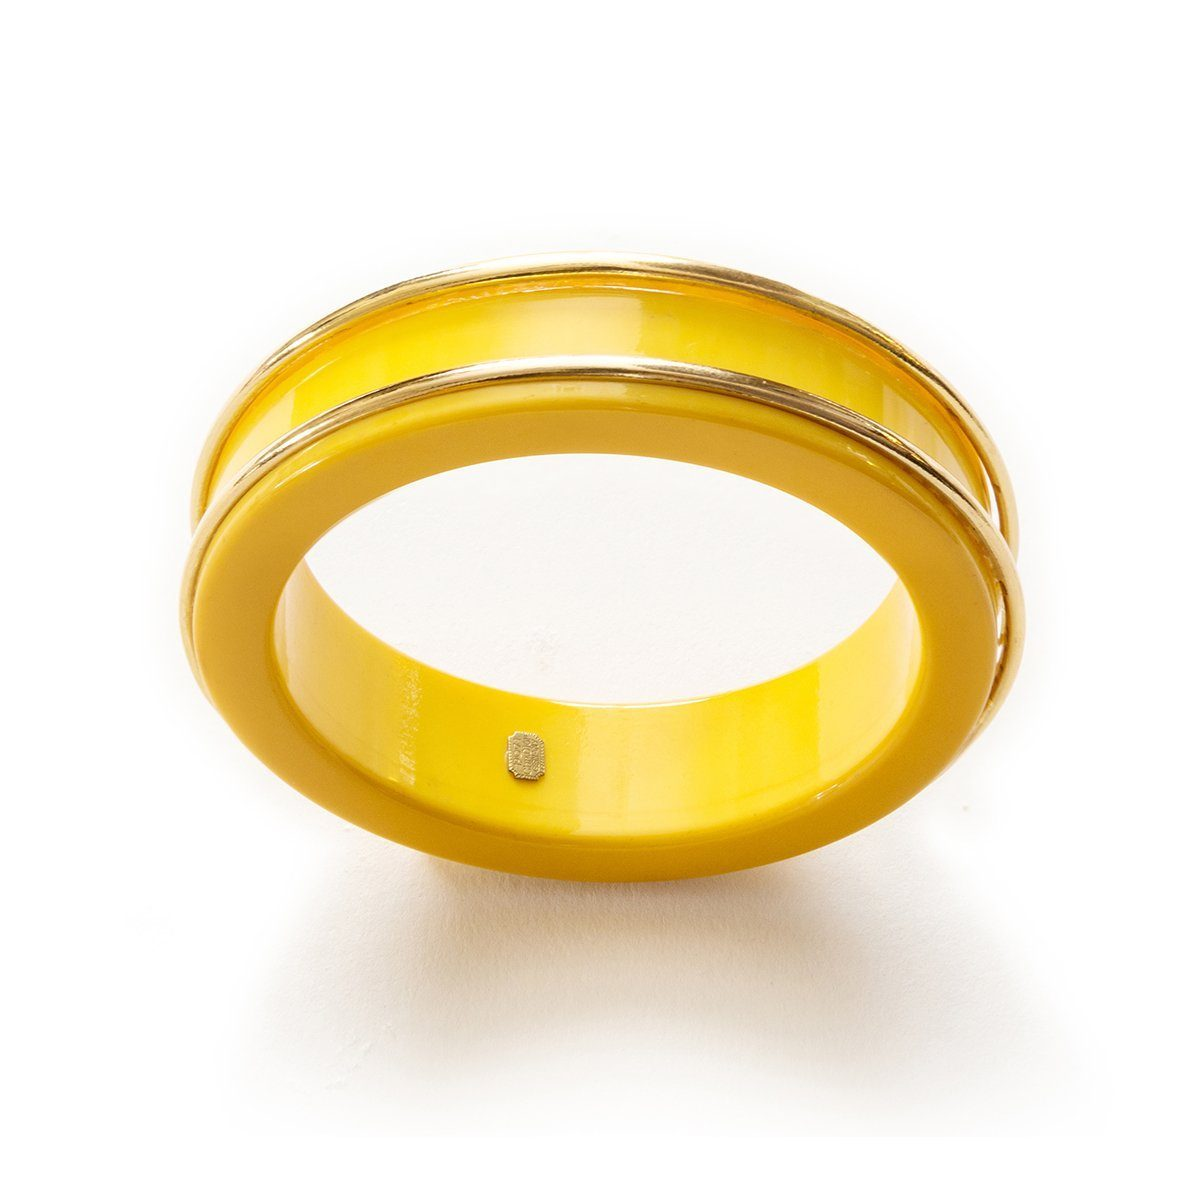 Vintage 1970s Dior Bangle Bracelet, Yellow & Gold Lucite